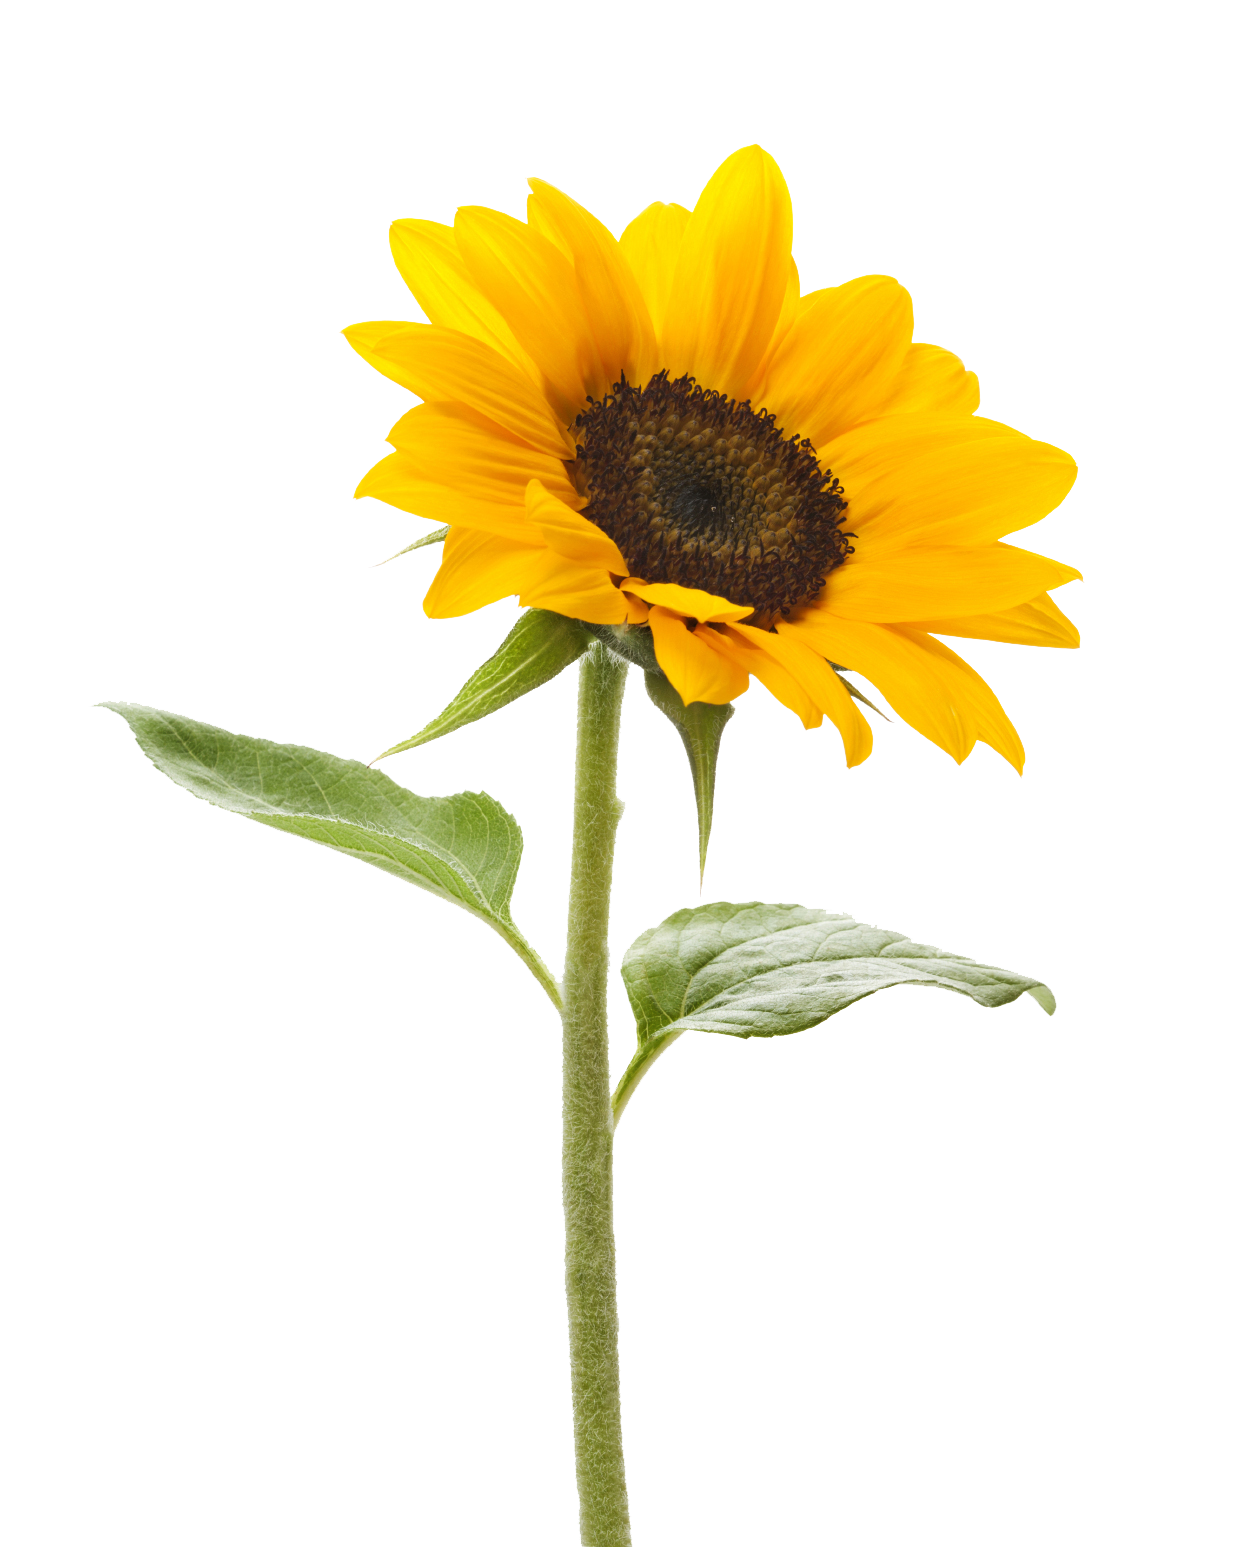 Sunflowers png single. Sunflower transparent pictures free